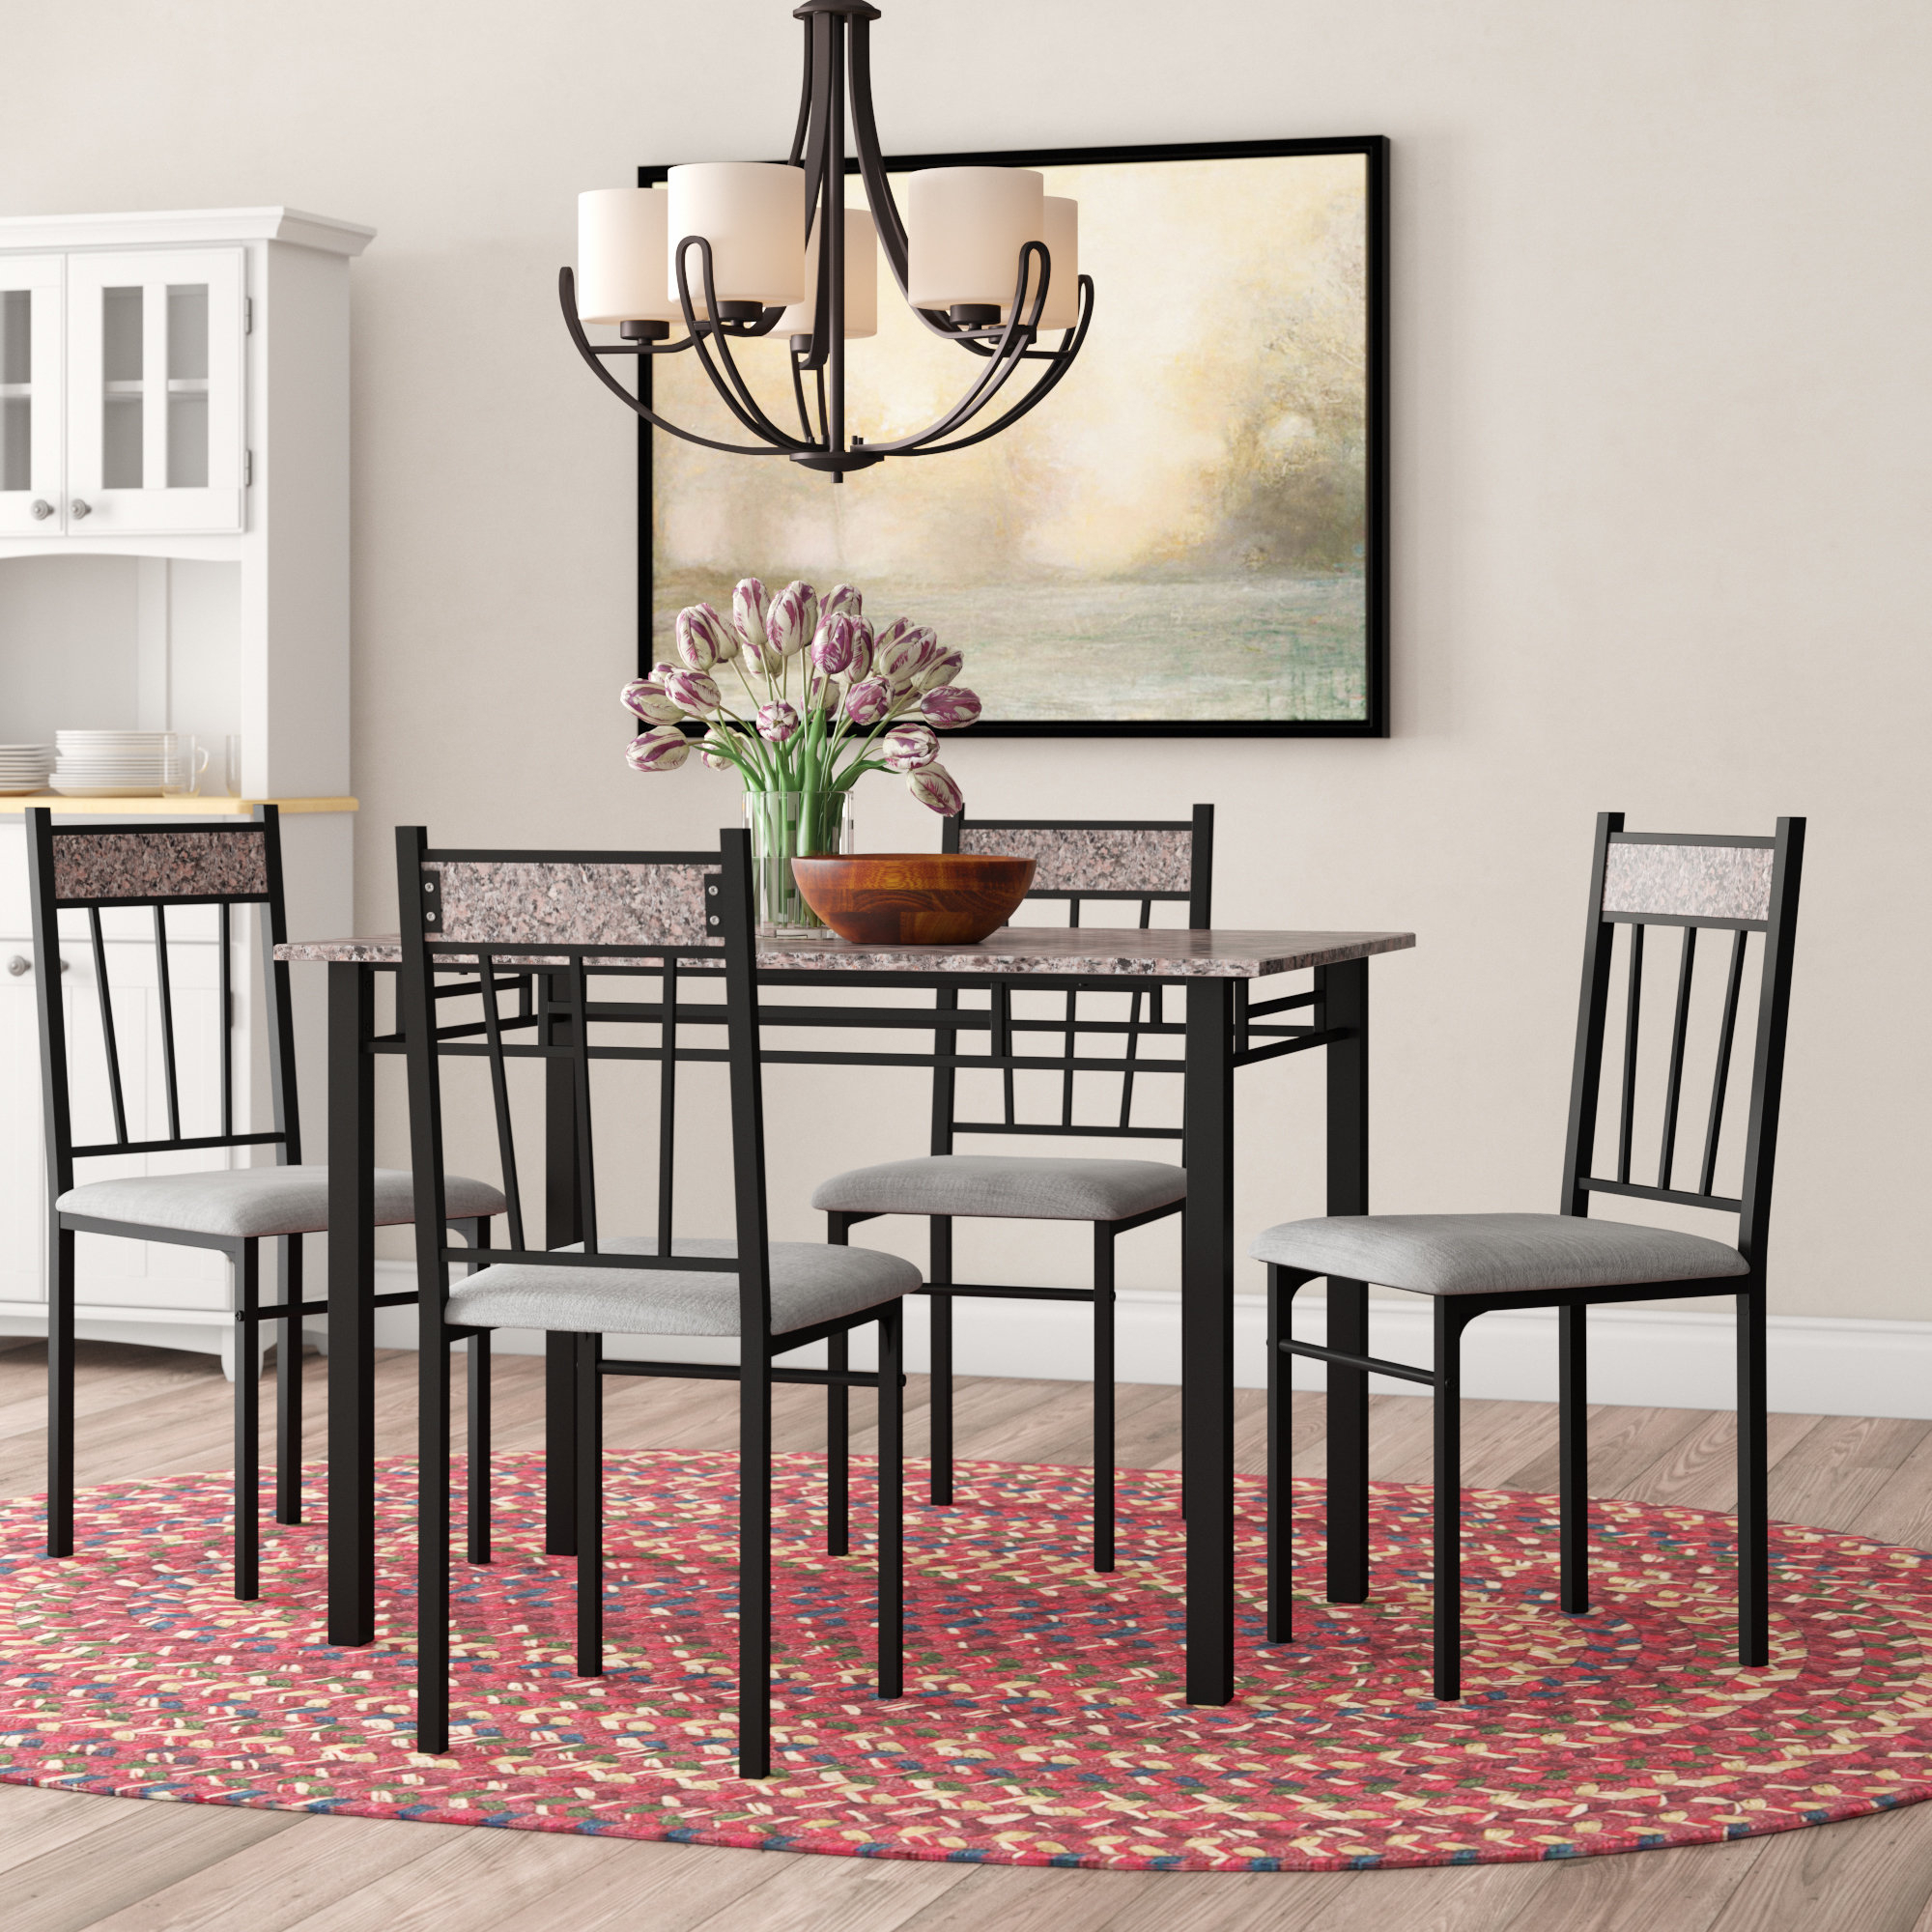 Conover 5 Piece Dining Sets With Regard To Most Current Winston Porter Caspar 5 Piece Dining Set & Reviews (View 11 of 25)